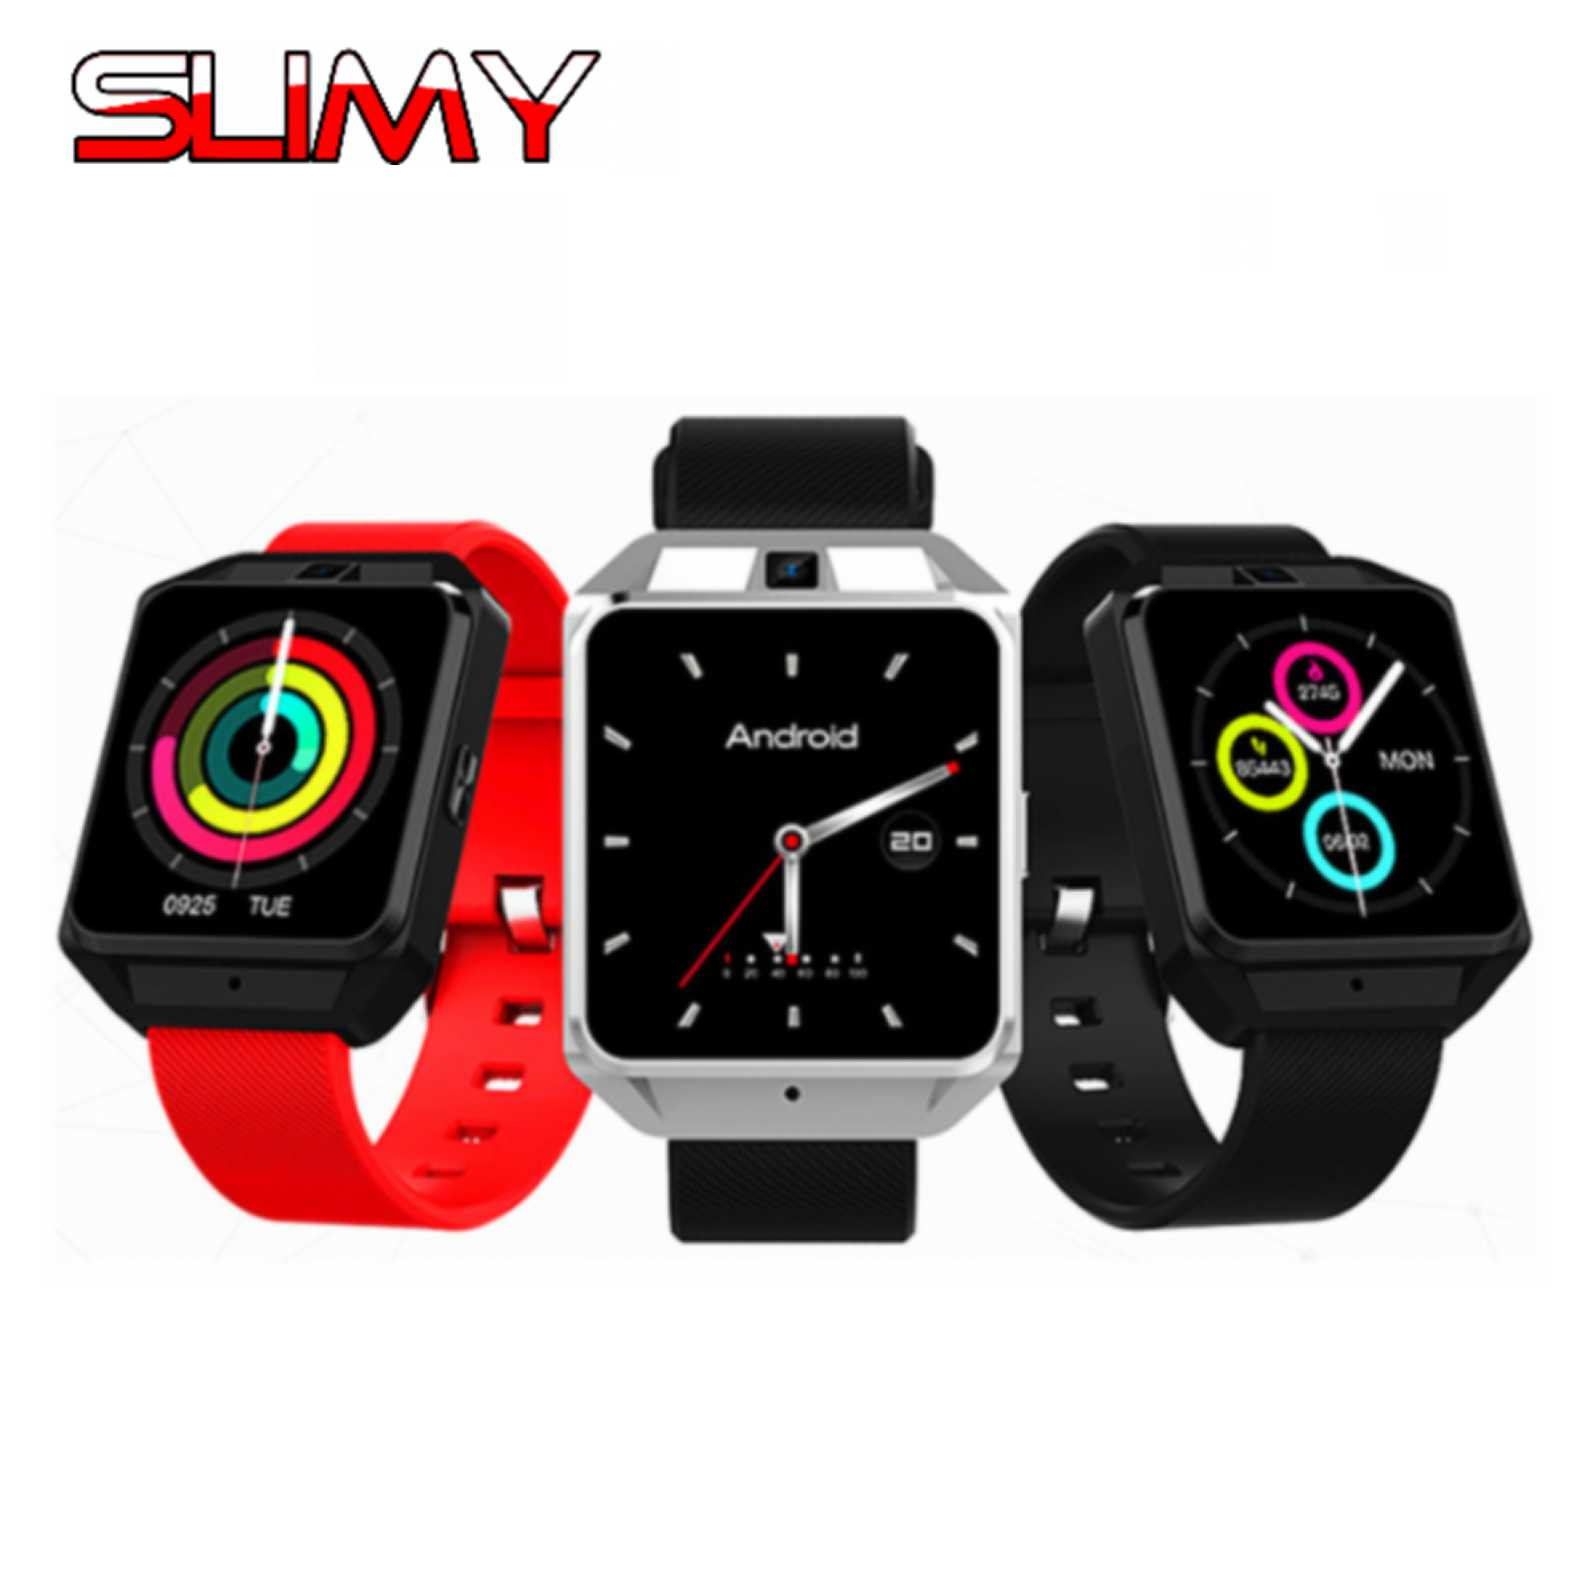 Slimy 4G Smart Watch M5 Android 6.0 MTK6737 1G+8G Smartwatch Support WIFI Nano SIM with Heart Rate Monitor PK M9 Q1 Pro 4G Watch 4g gps android 6 0 smart watch m5 mtk6737 heart rate monitor support sim card camera business smartwatch for men women 2018 gift